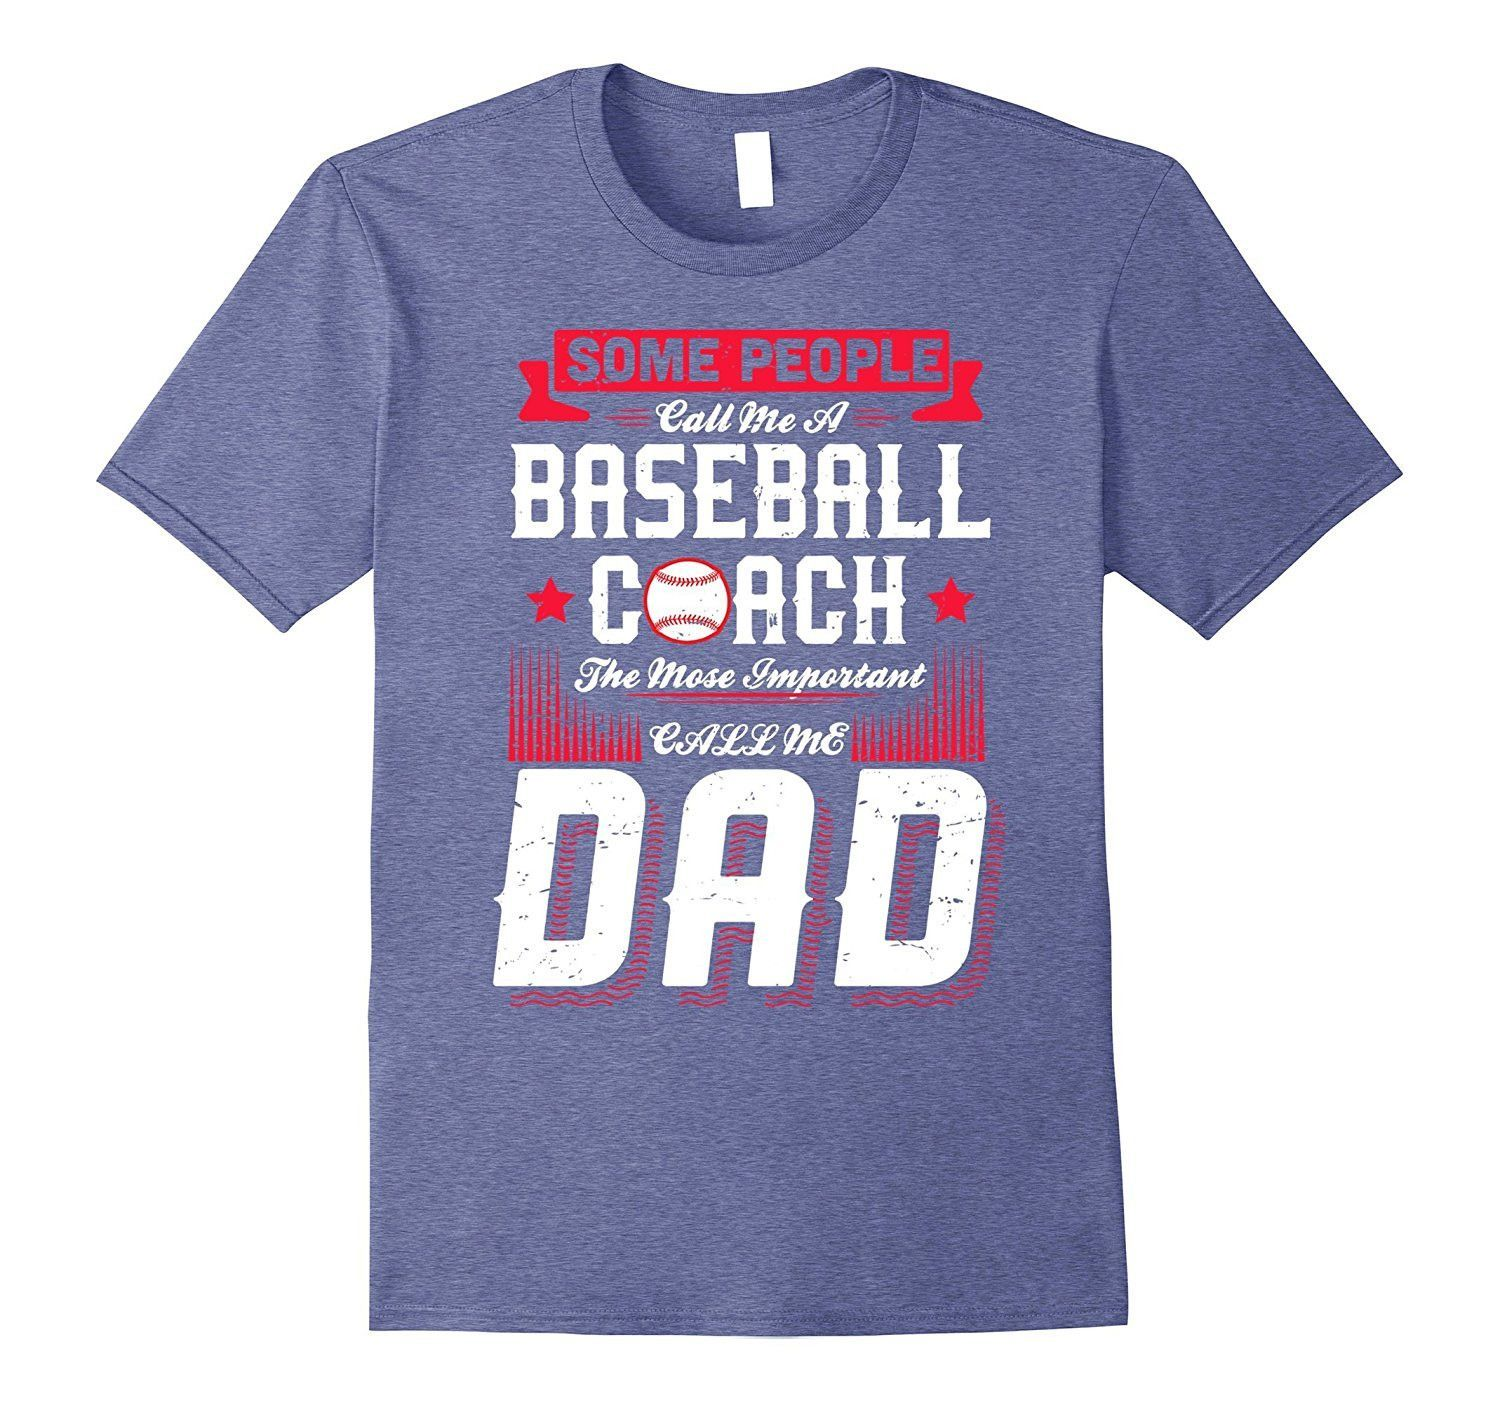 Baseball coach dad shirt gift shirt for father day dad